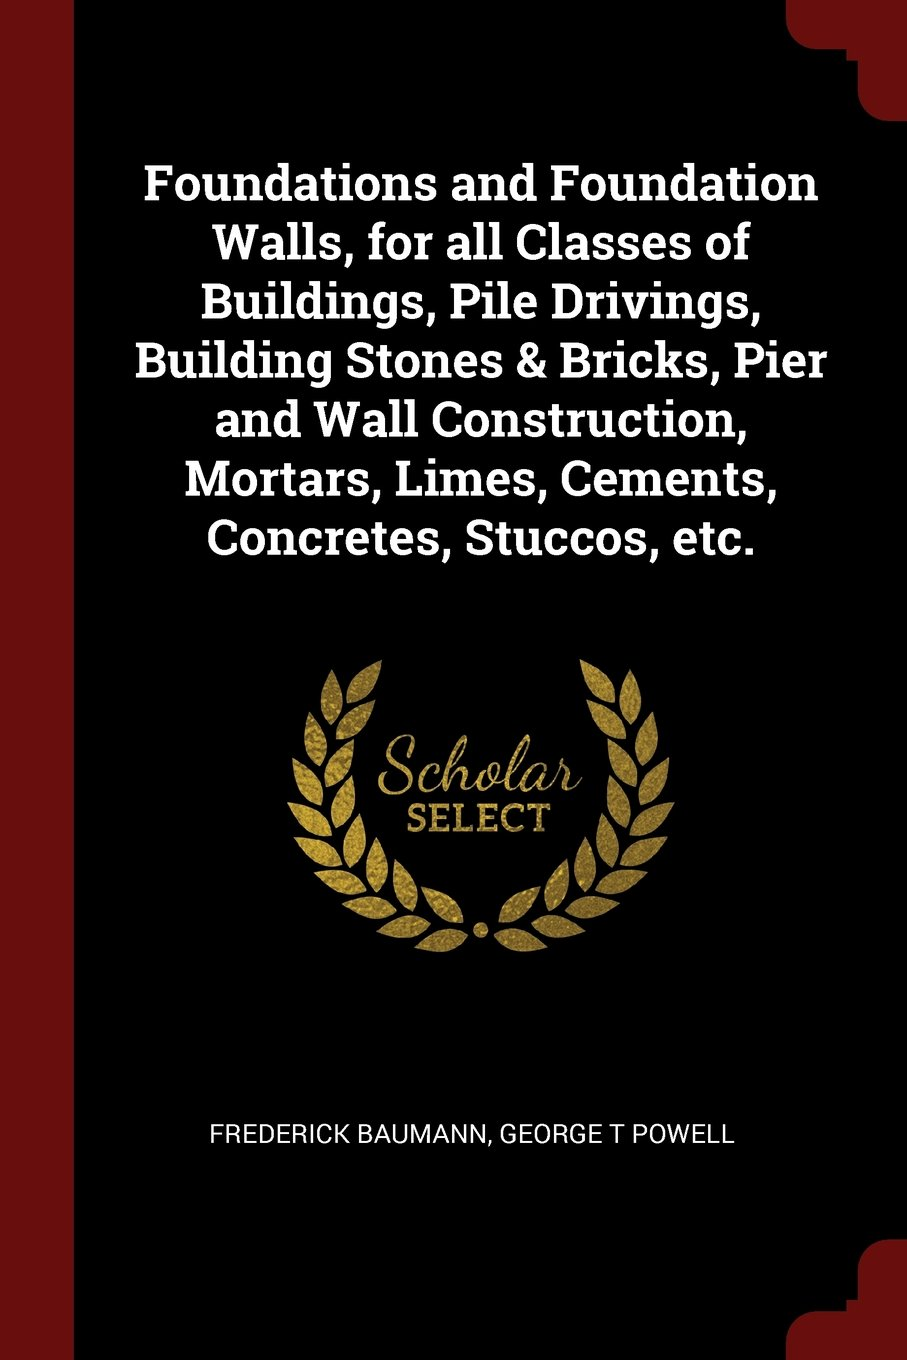 Download Foundations and Foundation Walls, for all Classes of Buildings, Pile Drivings, Building Stones & Bricks, Pier and Wall Construction, Mortars, Limes, Cements, Concretes, Stuccos, etc. pdf